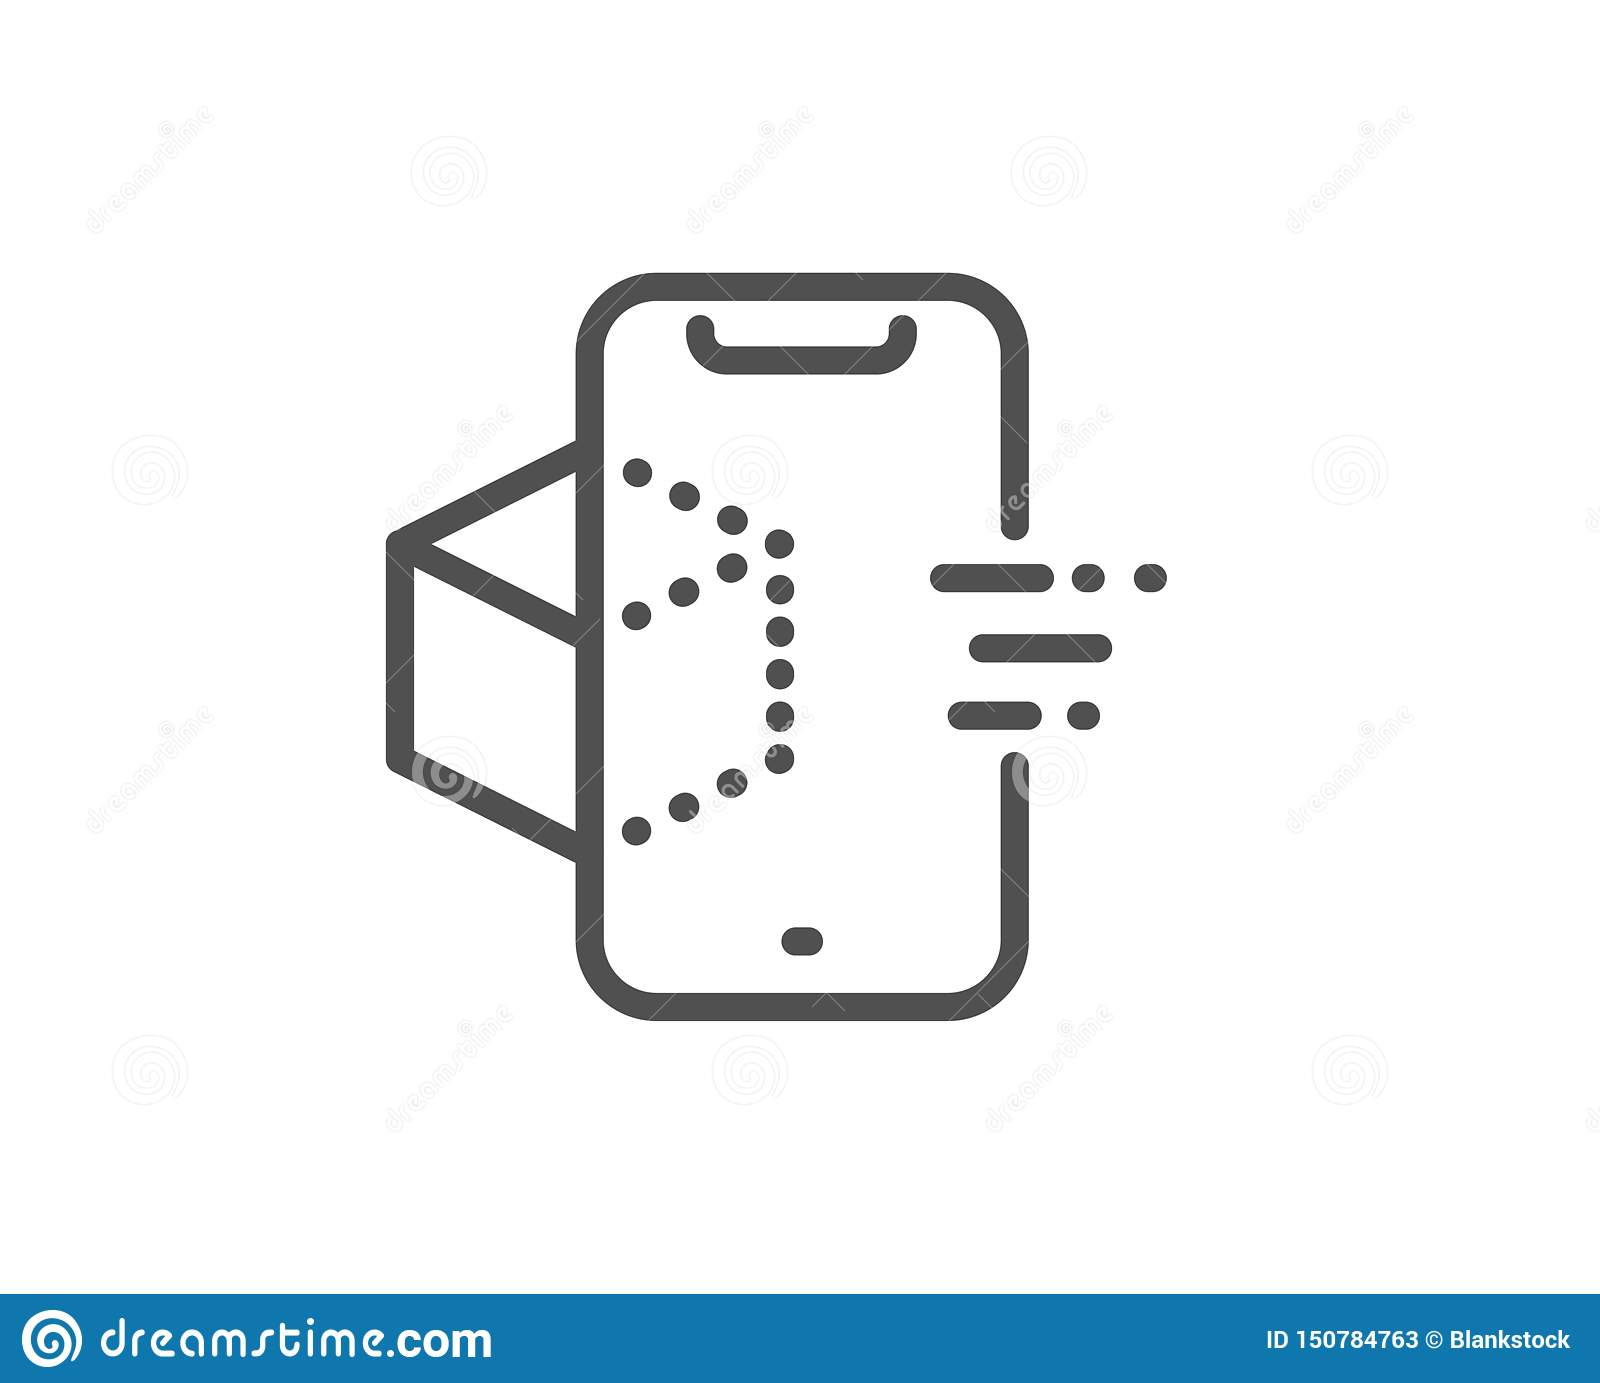 Augmented Reality Phone Line Icon. VR Simulation Sign. 3d Cube. Vector Stock Vector ...